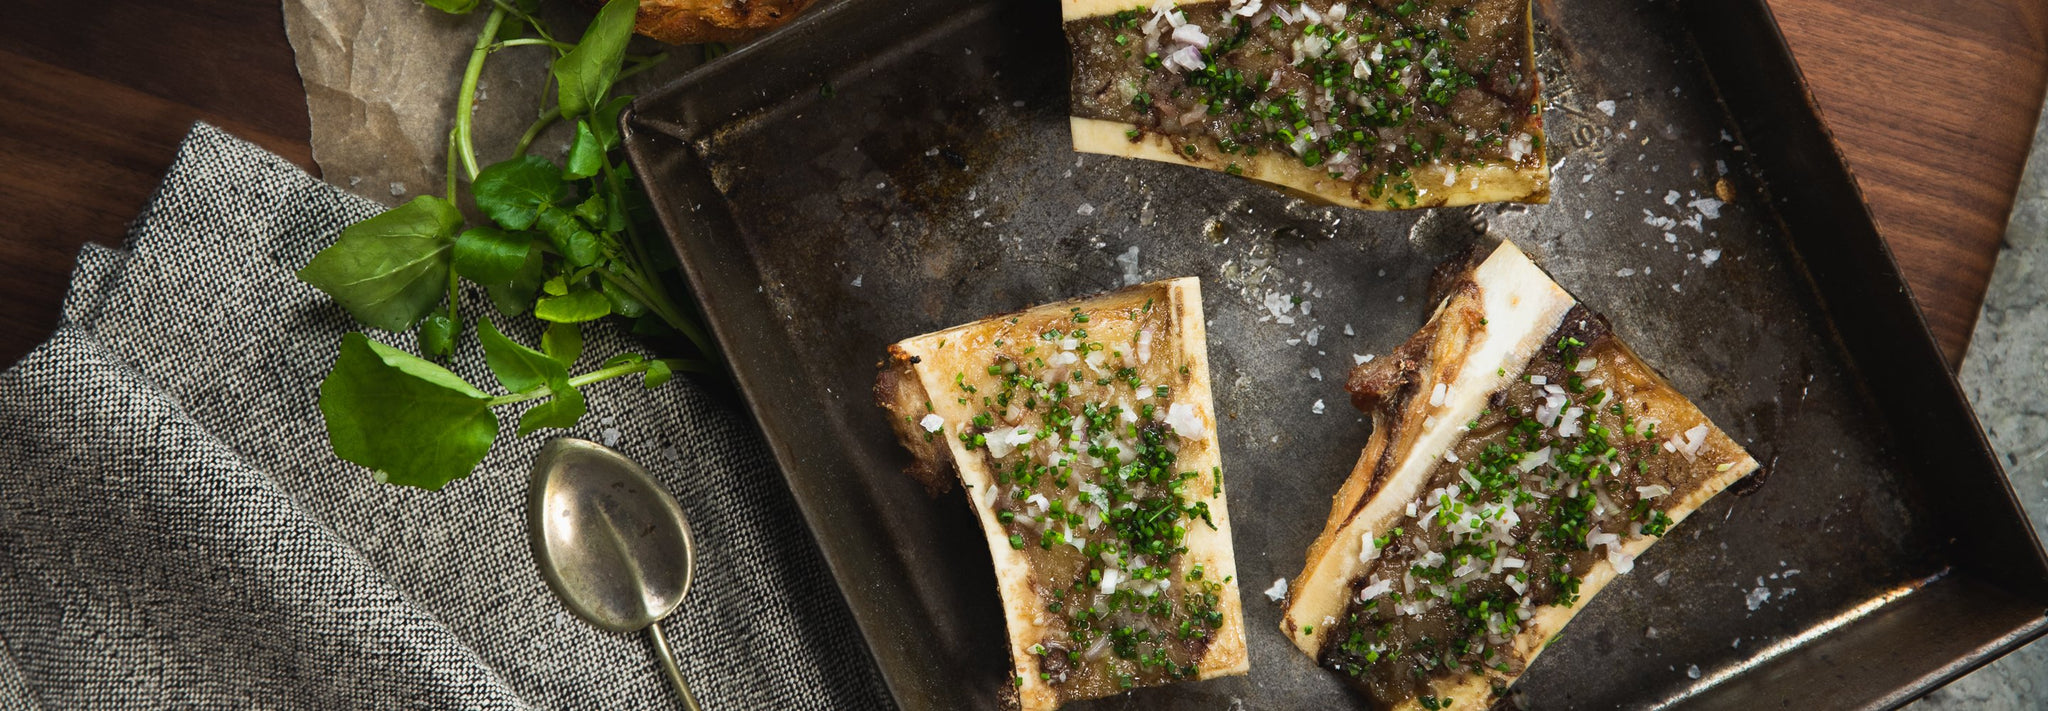 Roasted Bone Marrow with Chives & Shallots